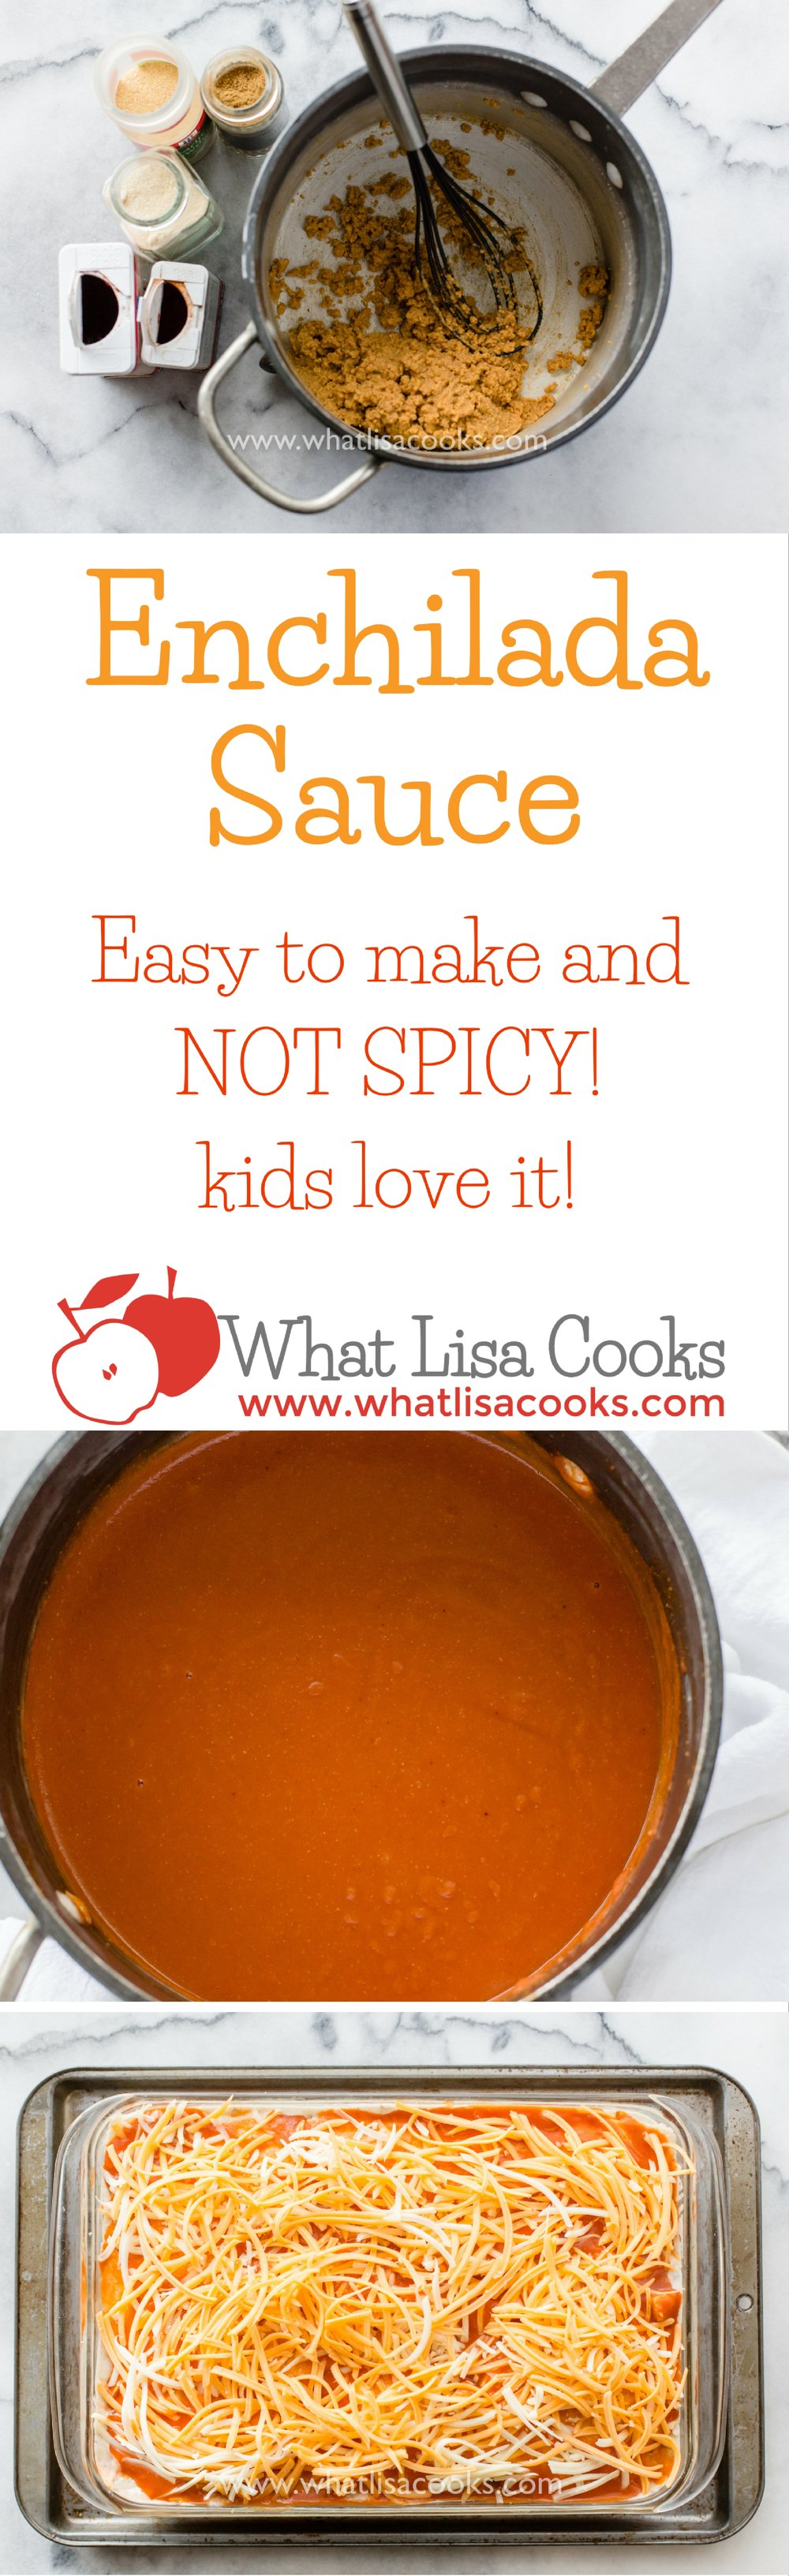 Easy homemade enchilada sauce that's not spicy, from whatlisacooks.com. Kid friendly enchilada sauce. Not spicy enchilada sauce.